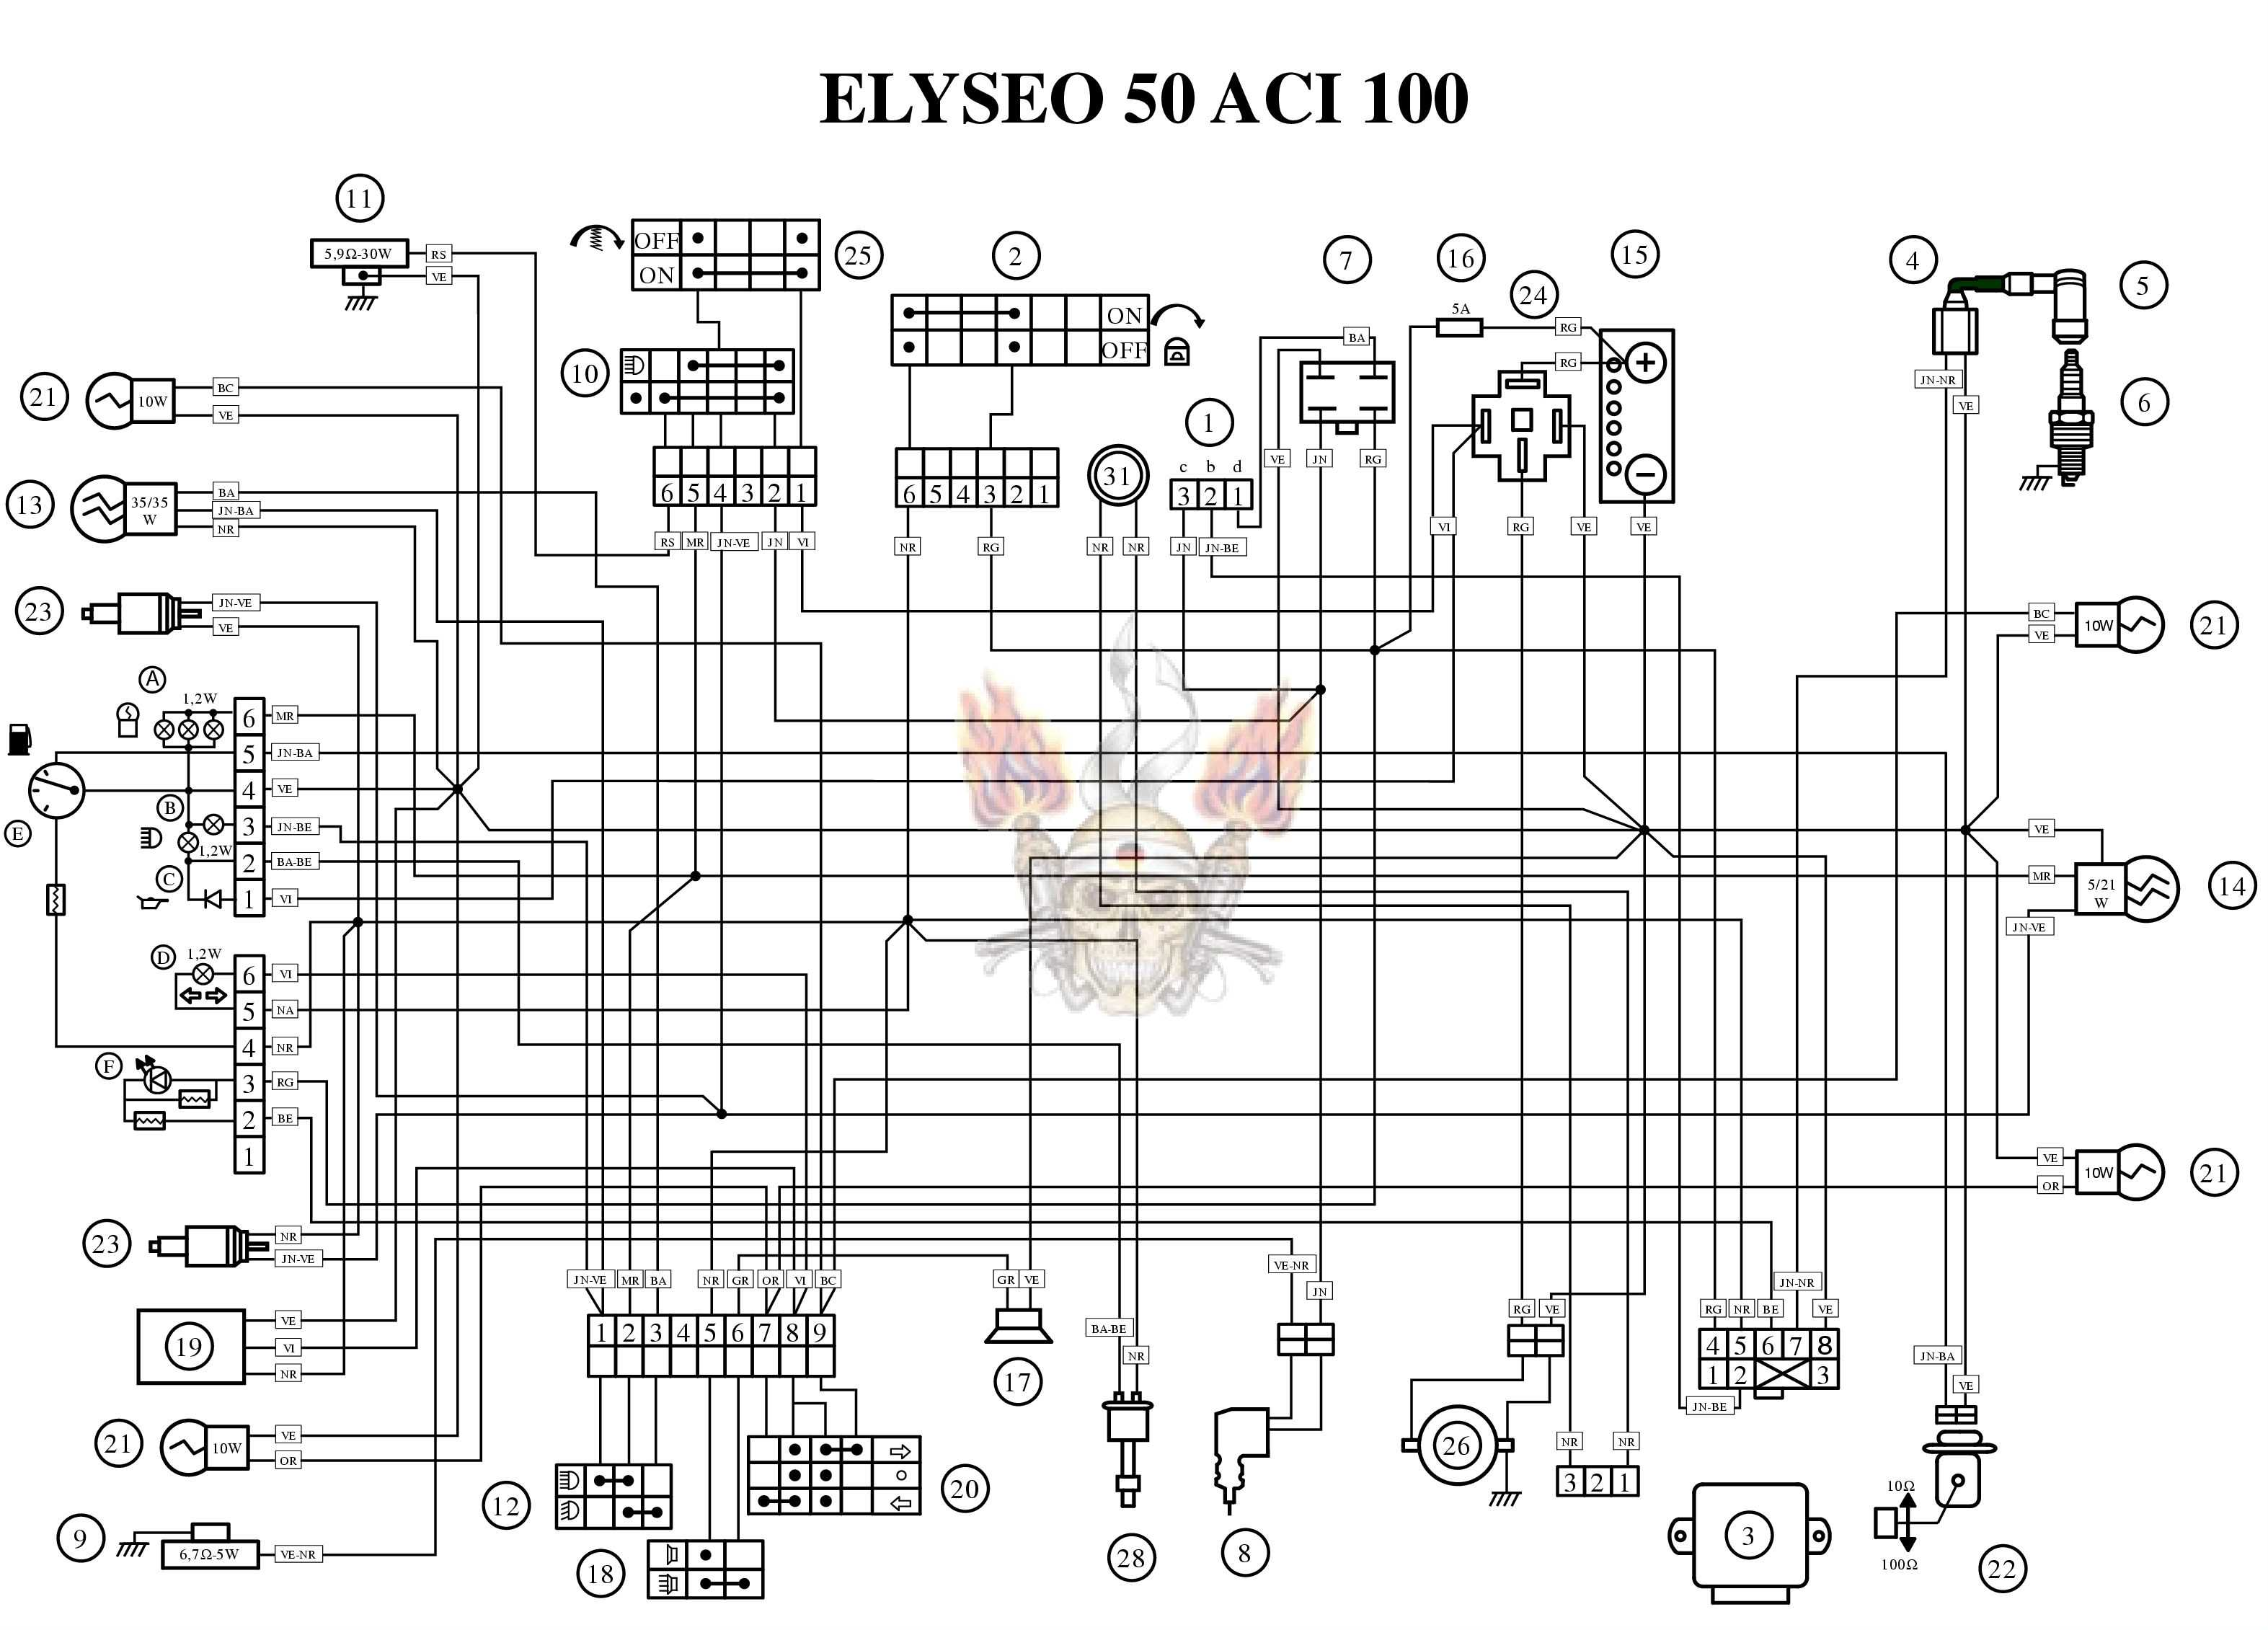 Linhai 300 Atv Wiring Diagram GY6 150Cc Engine Parts